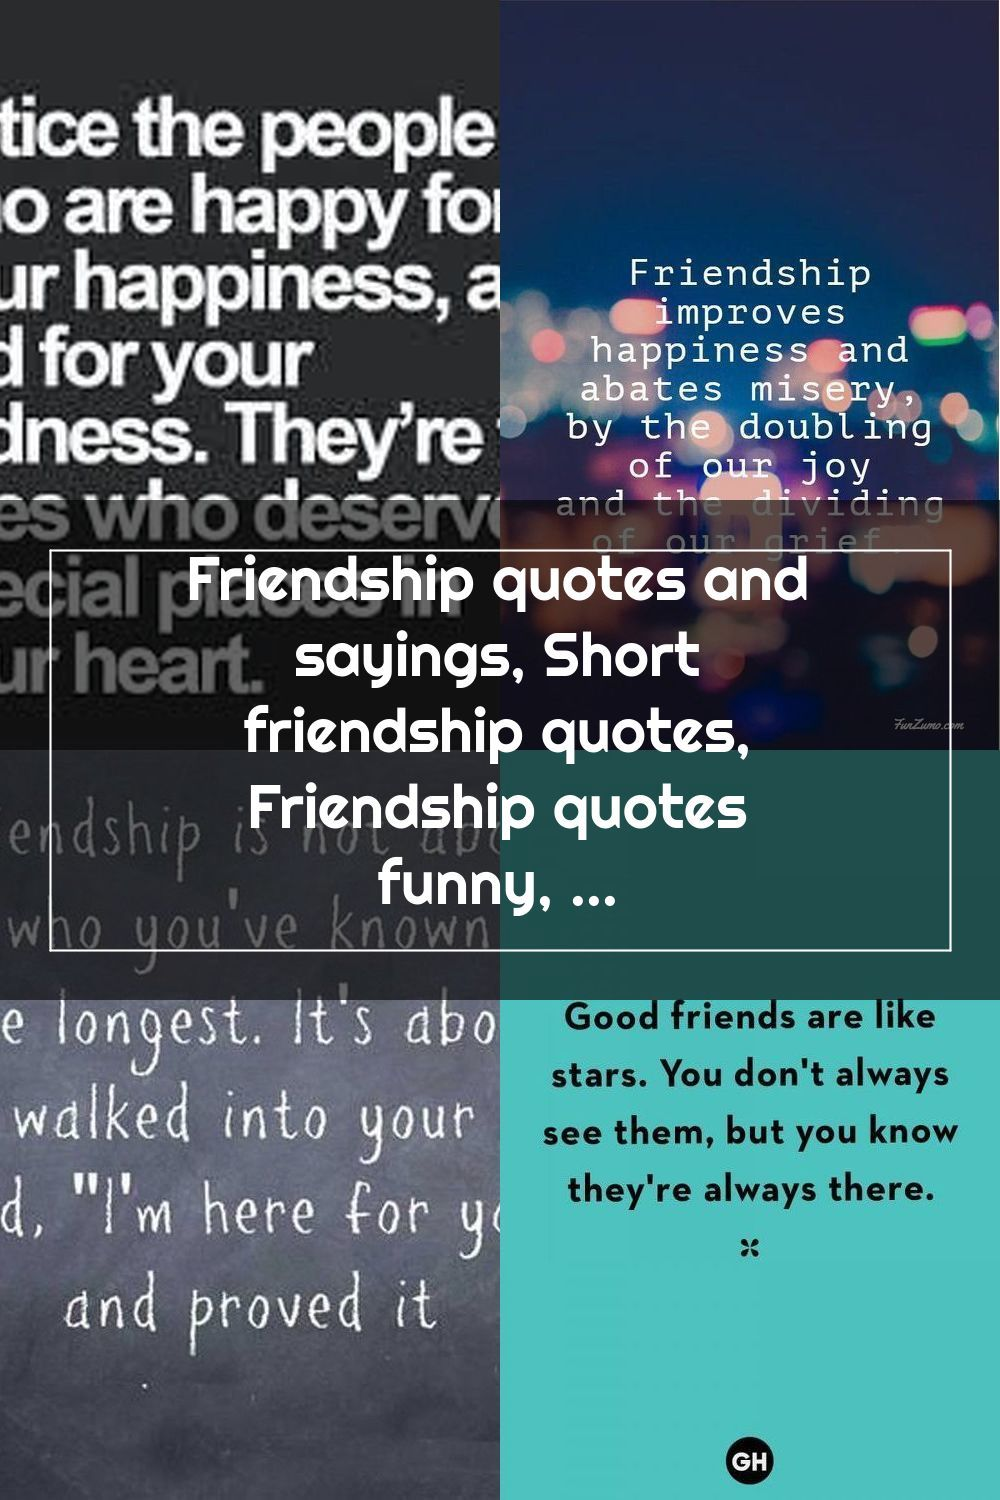 Friendship Quotes And Sayings Short Friendship Quotes Friendship Quotes F En 2020